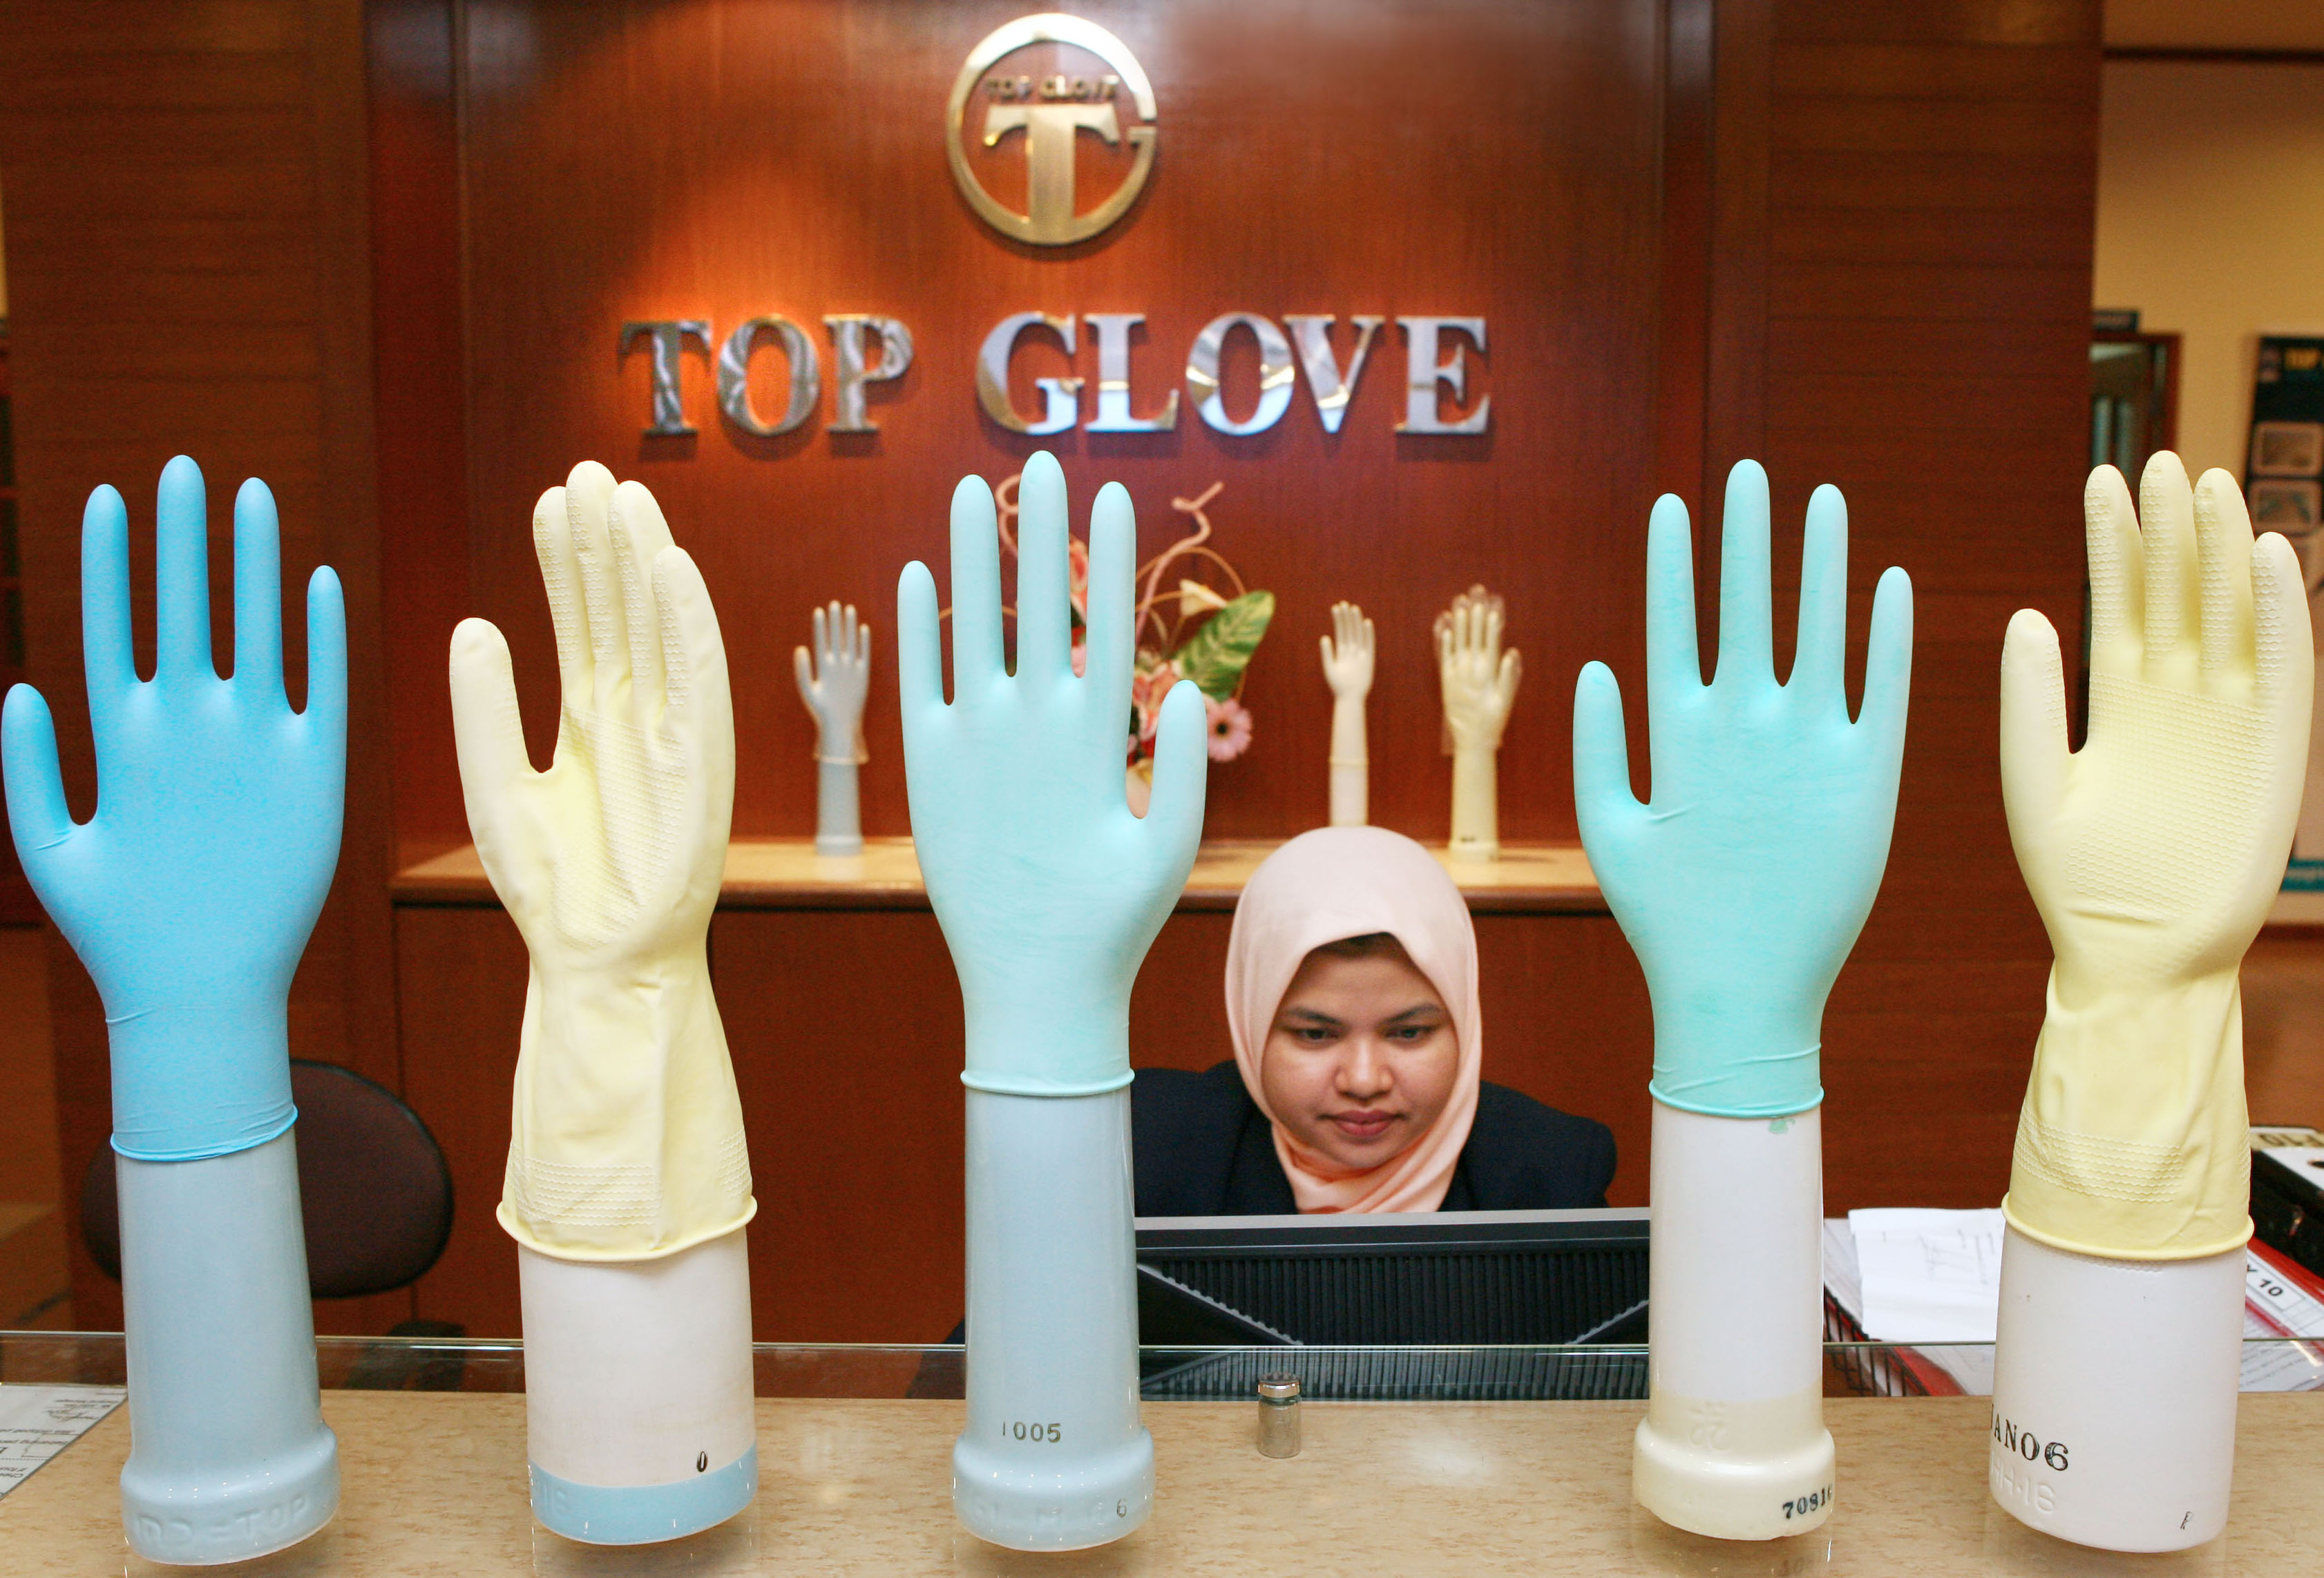 Colorful gloves greet visitors at the reception of Top Glove Factory in Meru ,Klang. Malaysia.Wednesday.10th.January.2007.Photographer:Goh Seng Chong./Bloomberg News